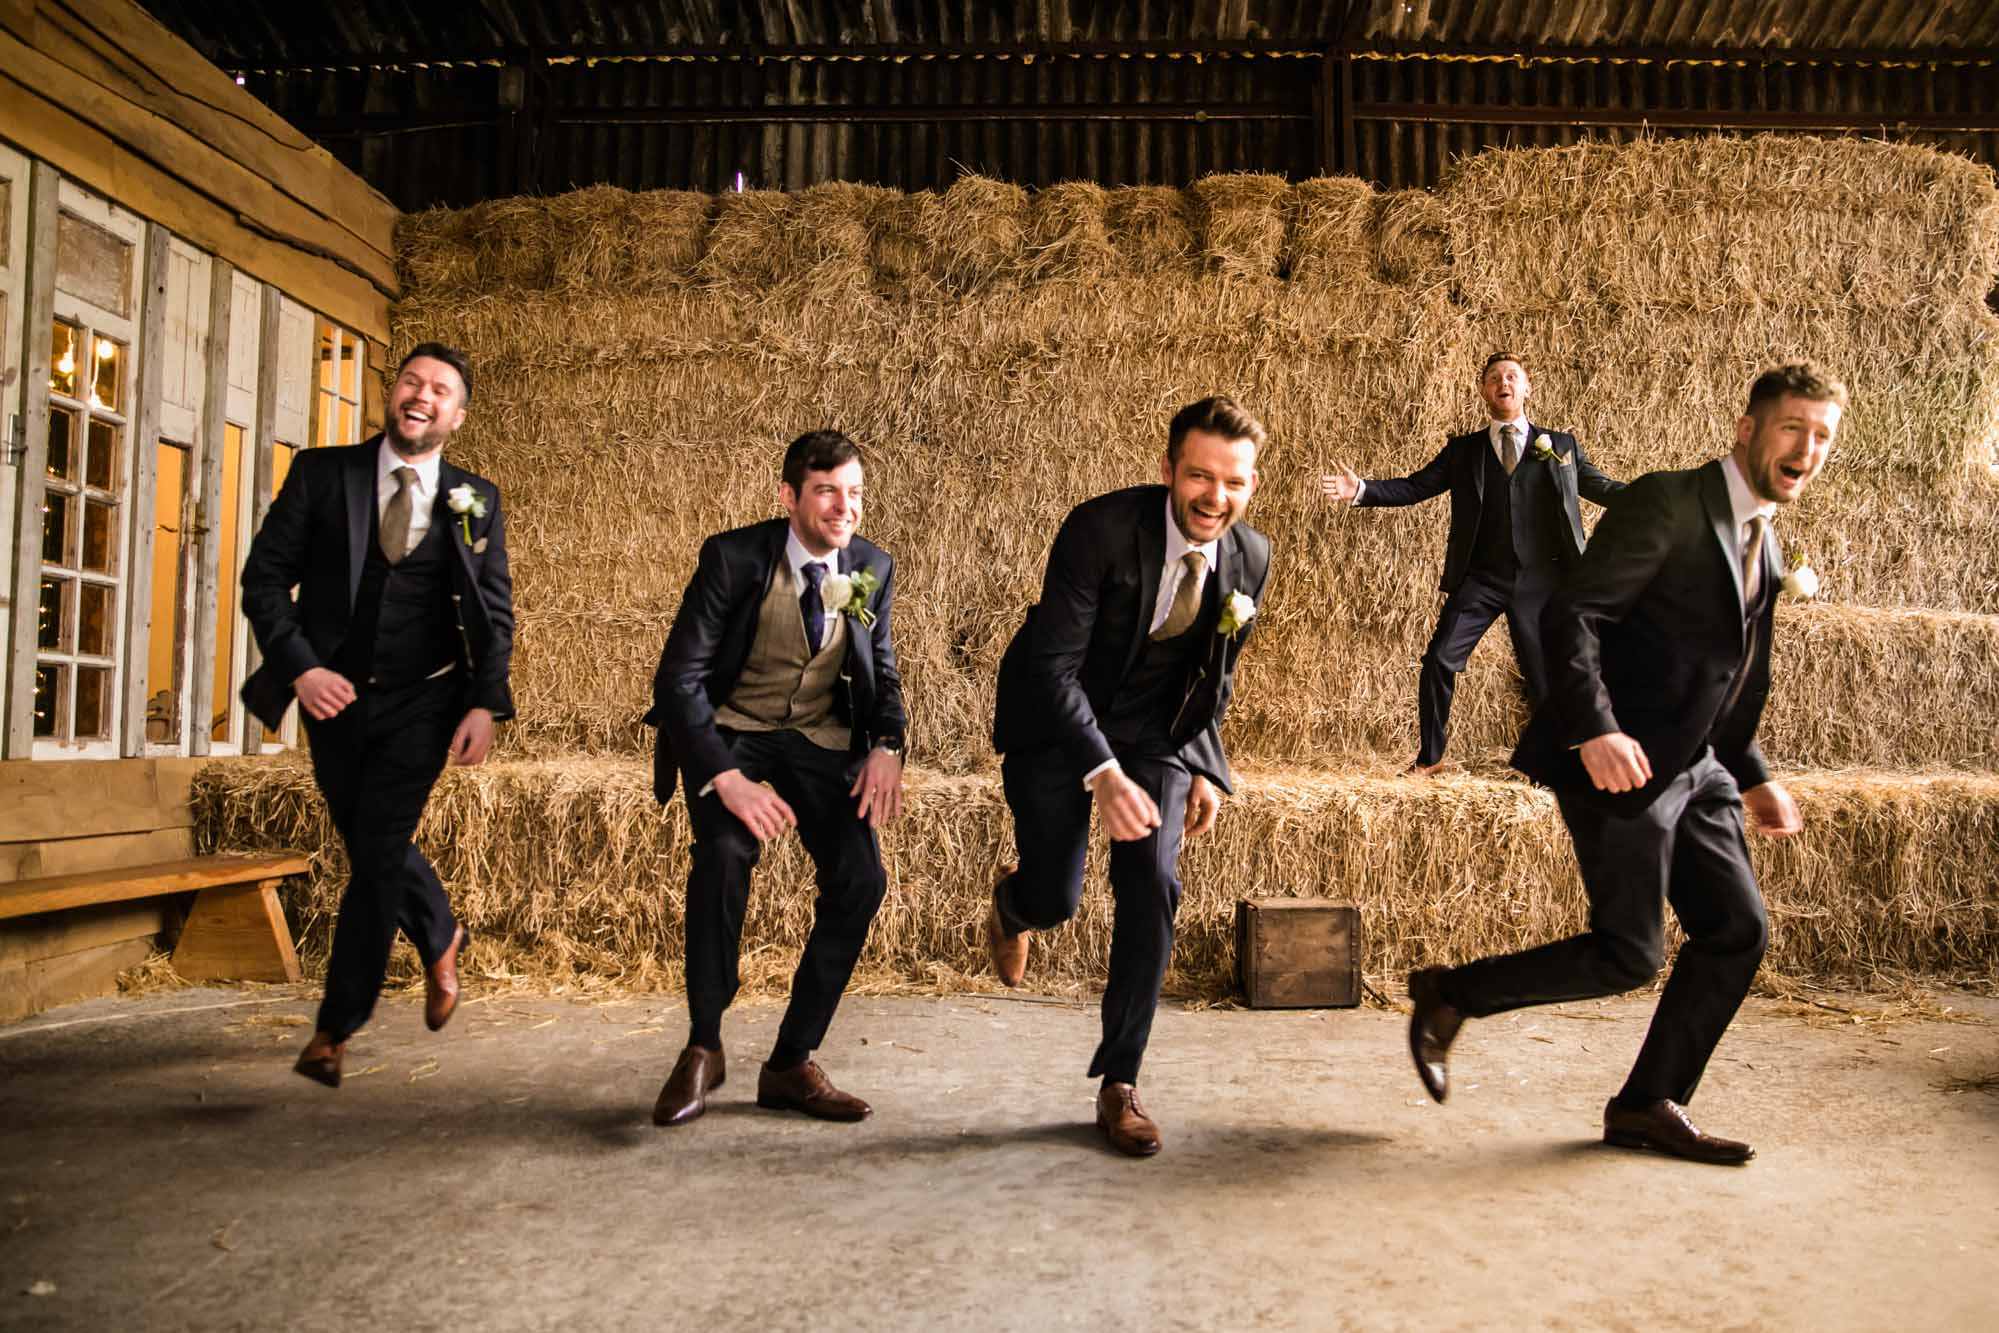 Owen House Barn Fun Wedding Photographs